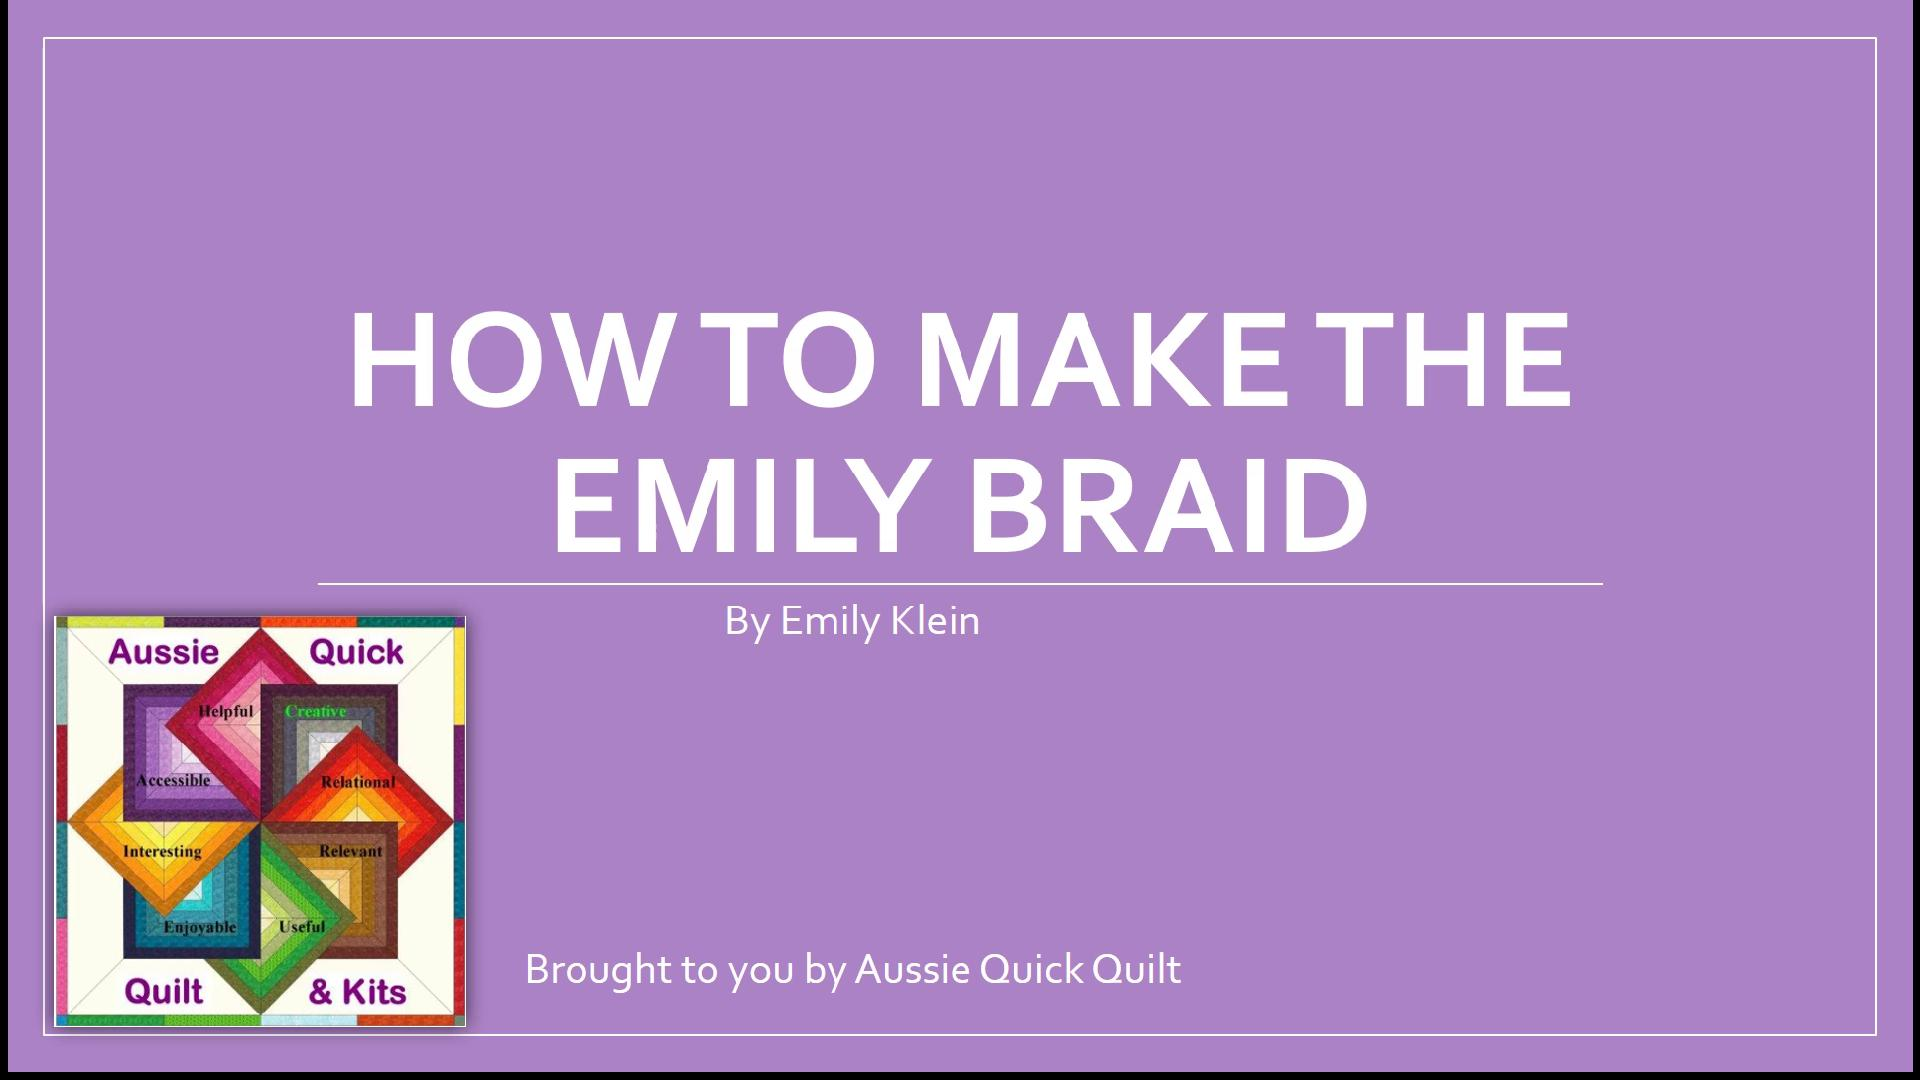 How to make the em braid